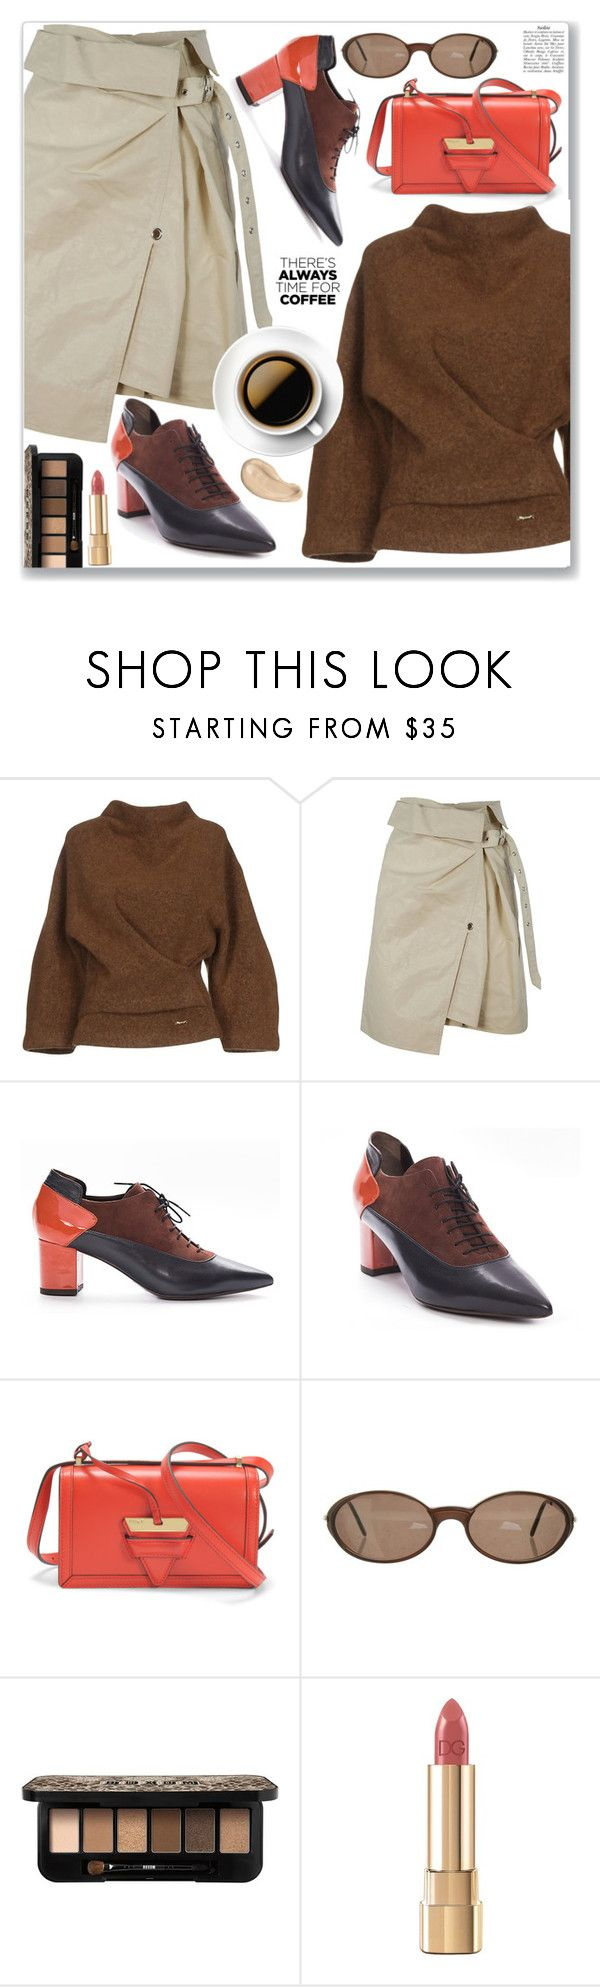 """""""Work Wear Skirt, Sweater and Shoes"""" by jecakns ❤ liked on Polyvore featuring Dsquared2, Isabel Marant, Loewe, Cartier and Dolce&Gabbana"""